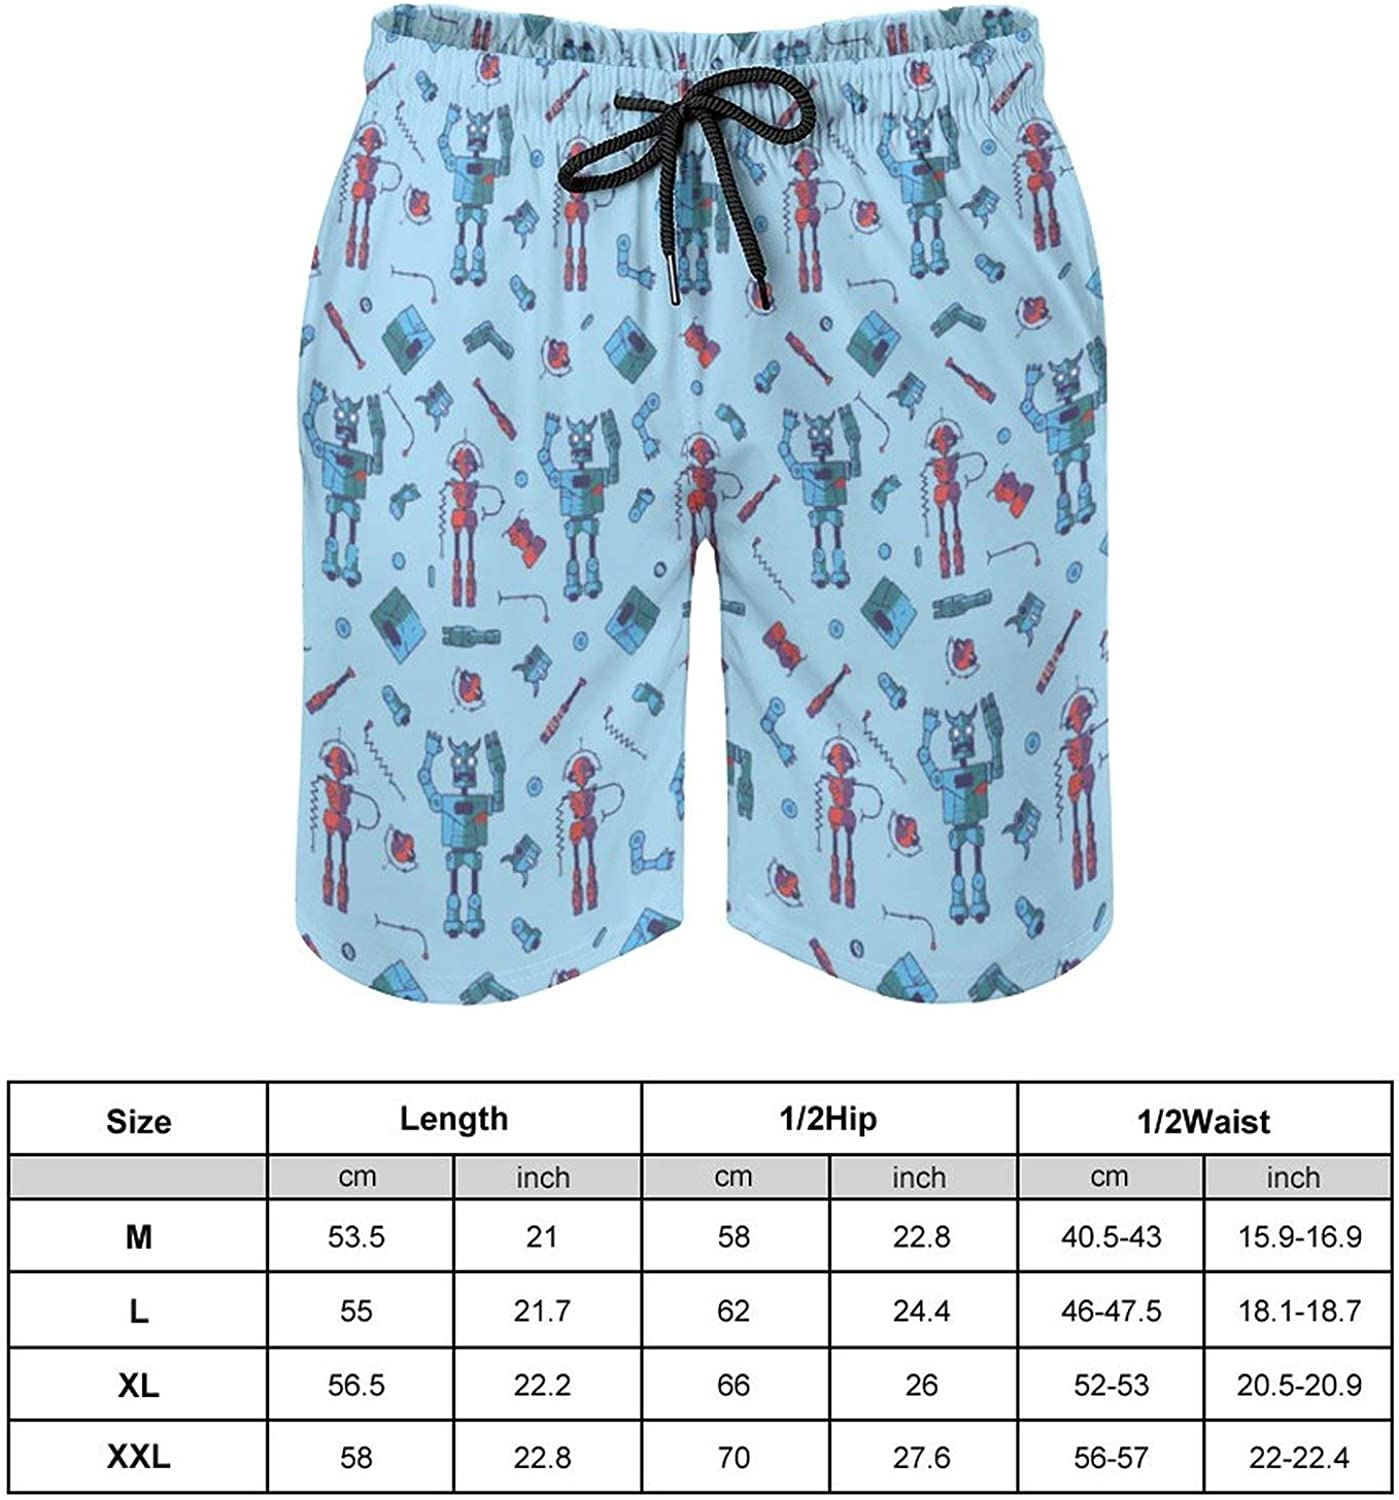 SWEET TANG Mens Swim Trunks Quick Dry Beach Pants with Mesh Lining